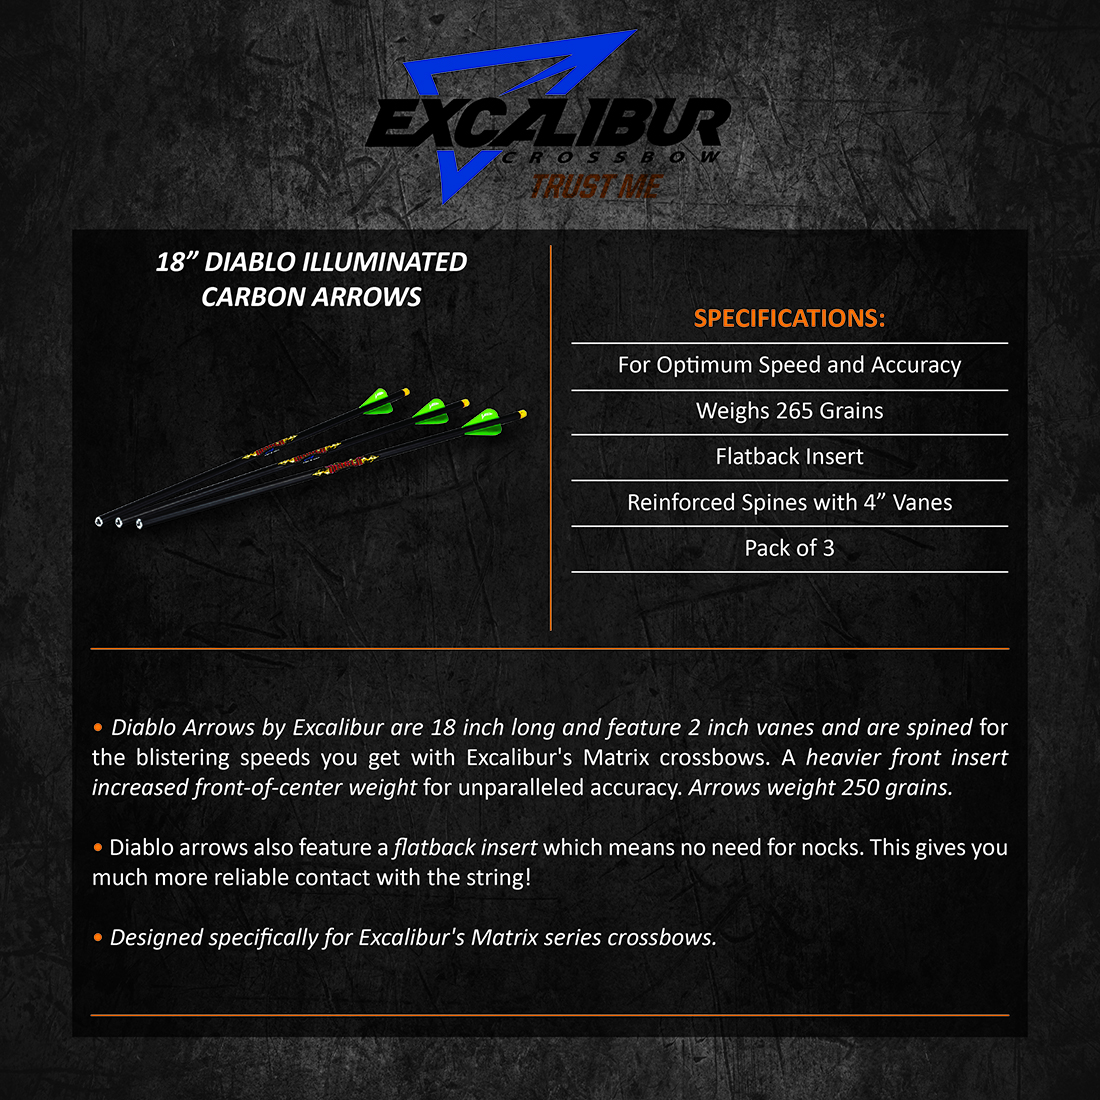 Excalibur_Diablo_Illuminated_Carbon_Arrows_3pk18in_Product_Description